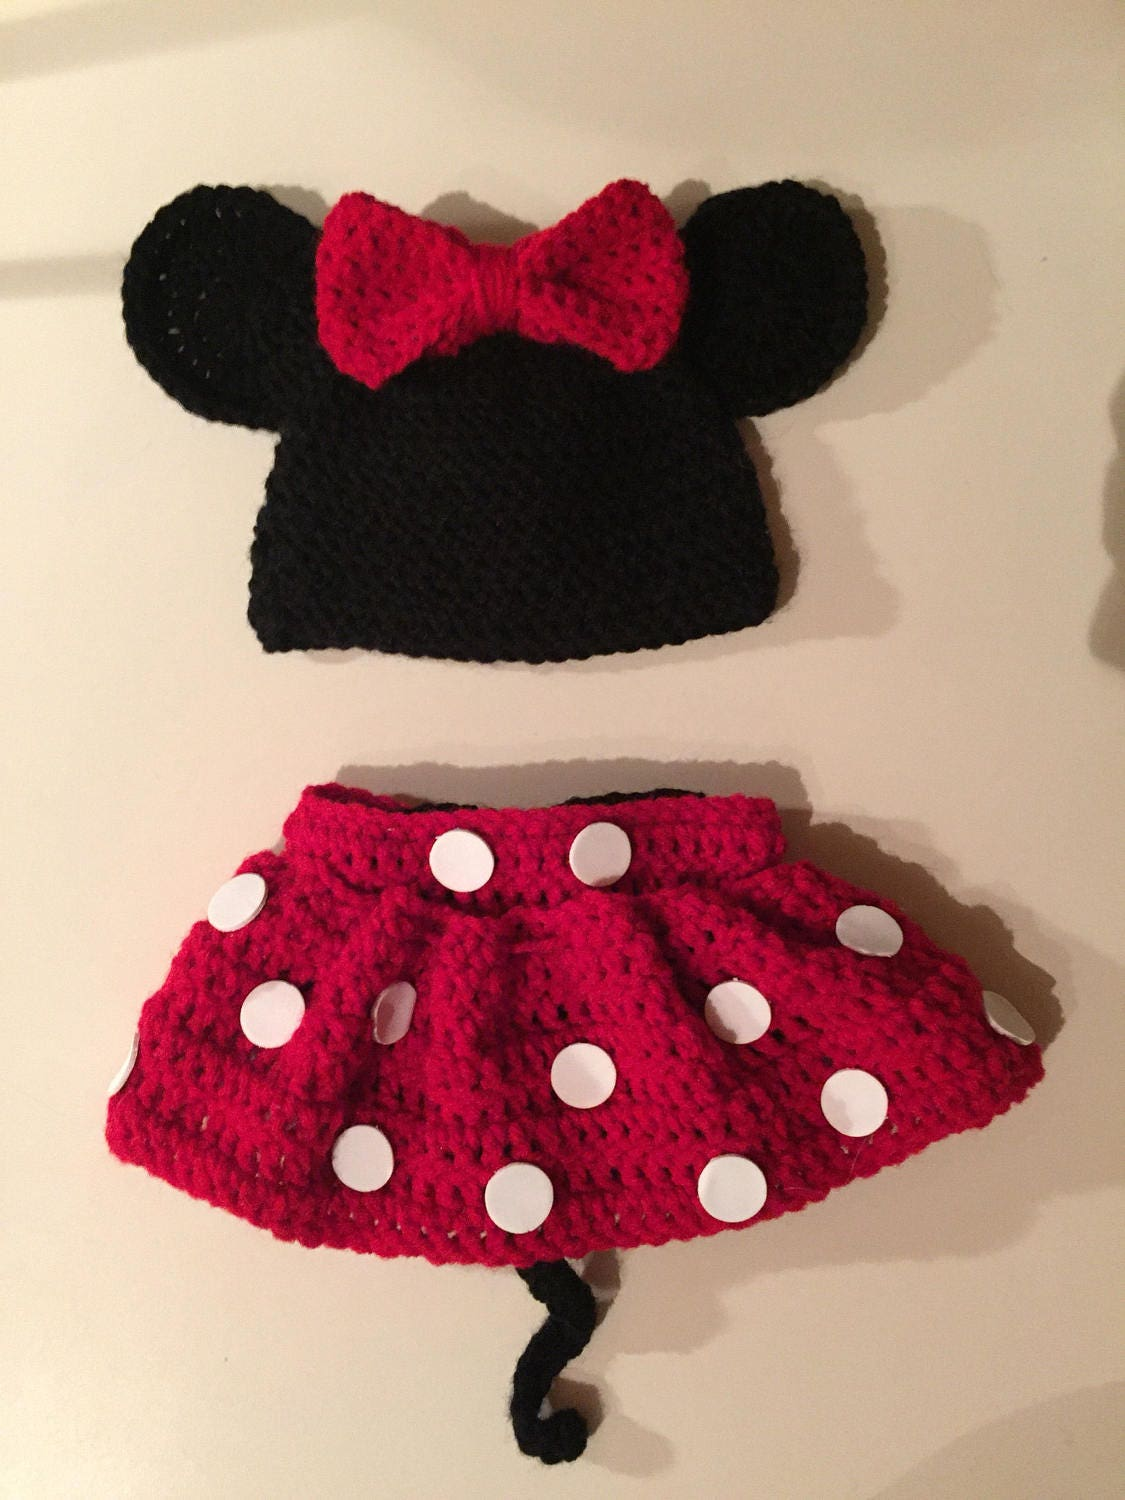 Crochet Minnie Mouse Outfit Newborn 12 Months Etsy